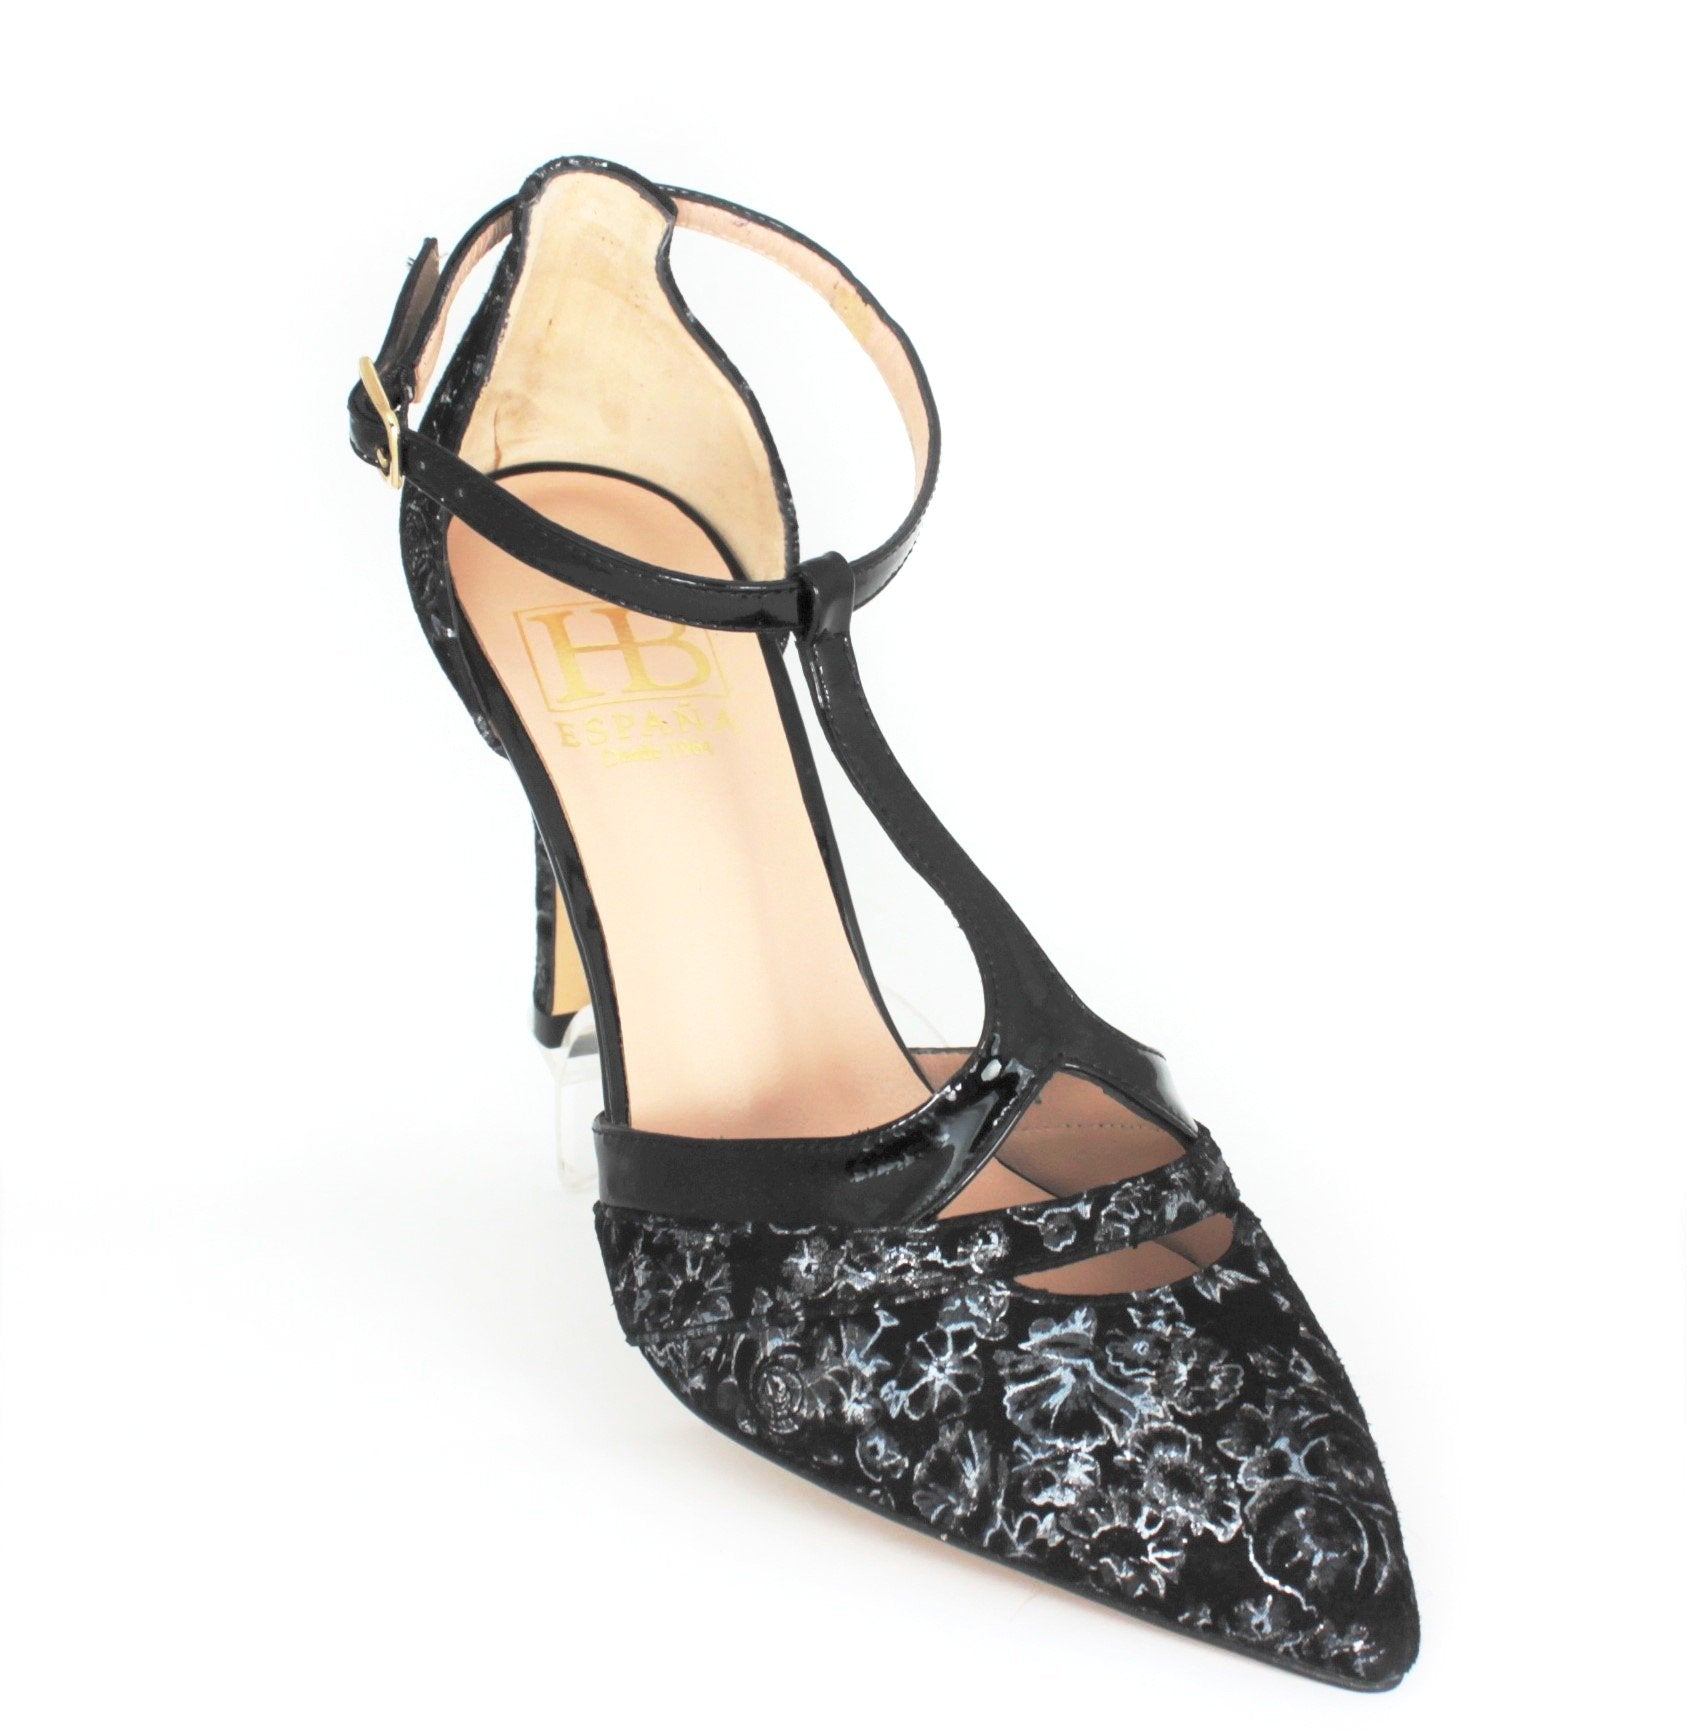 Real High Heel T-Bar Court Shoe